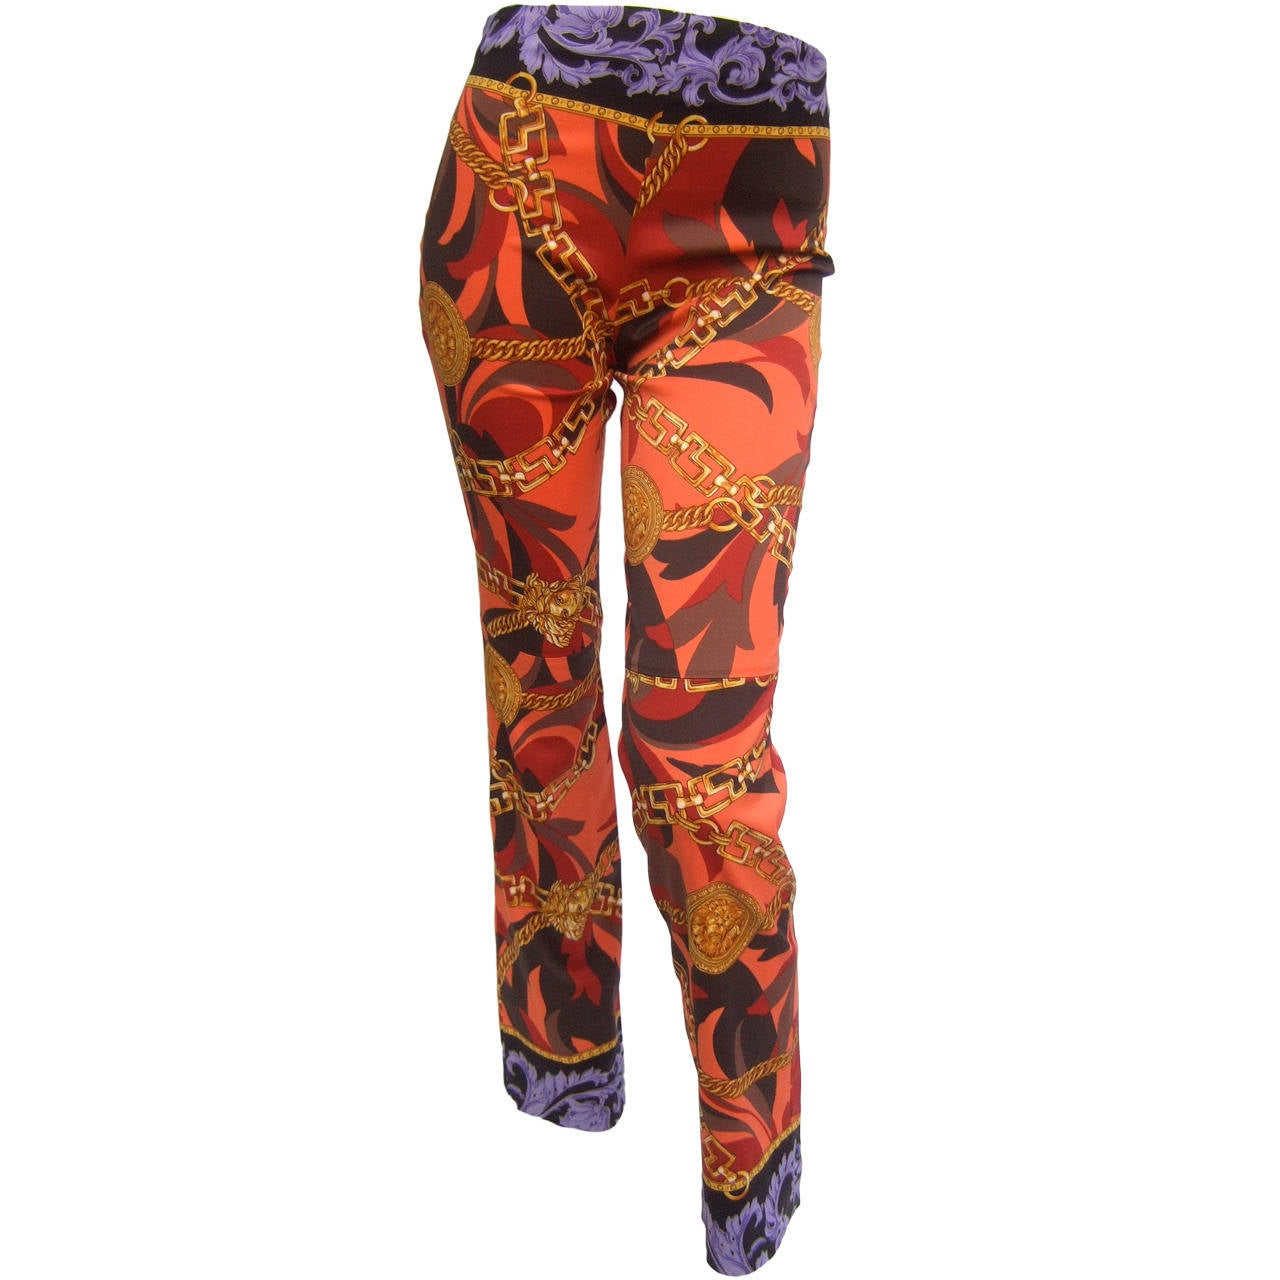 Versace Iconic Medusa Graphic Print Stretch Jeans Size 28 1